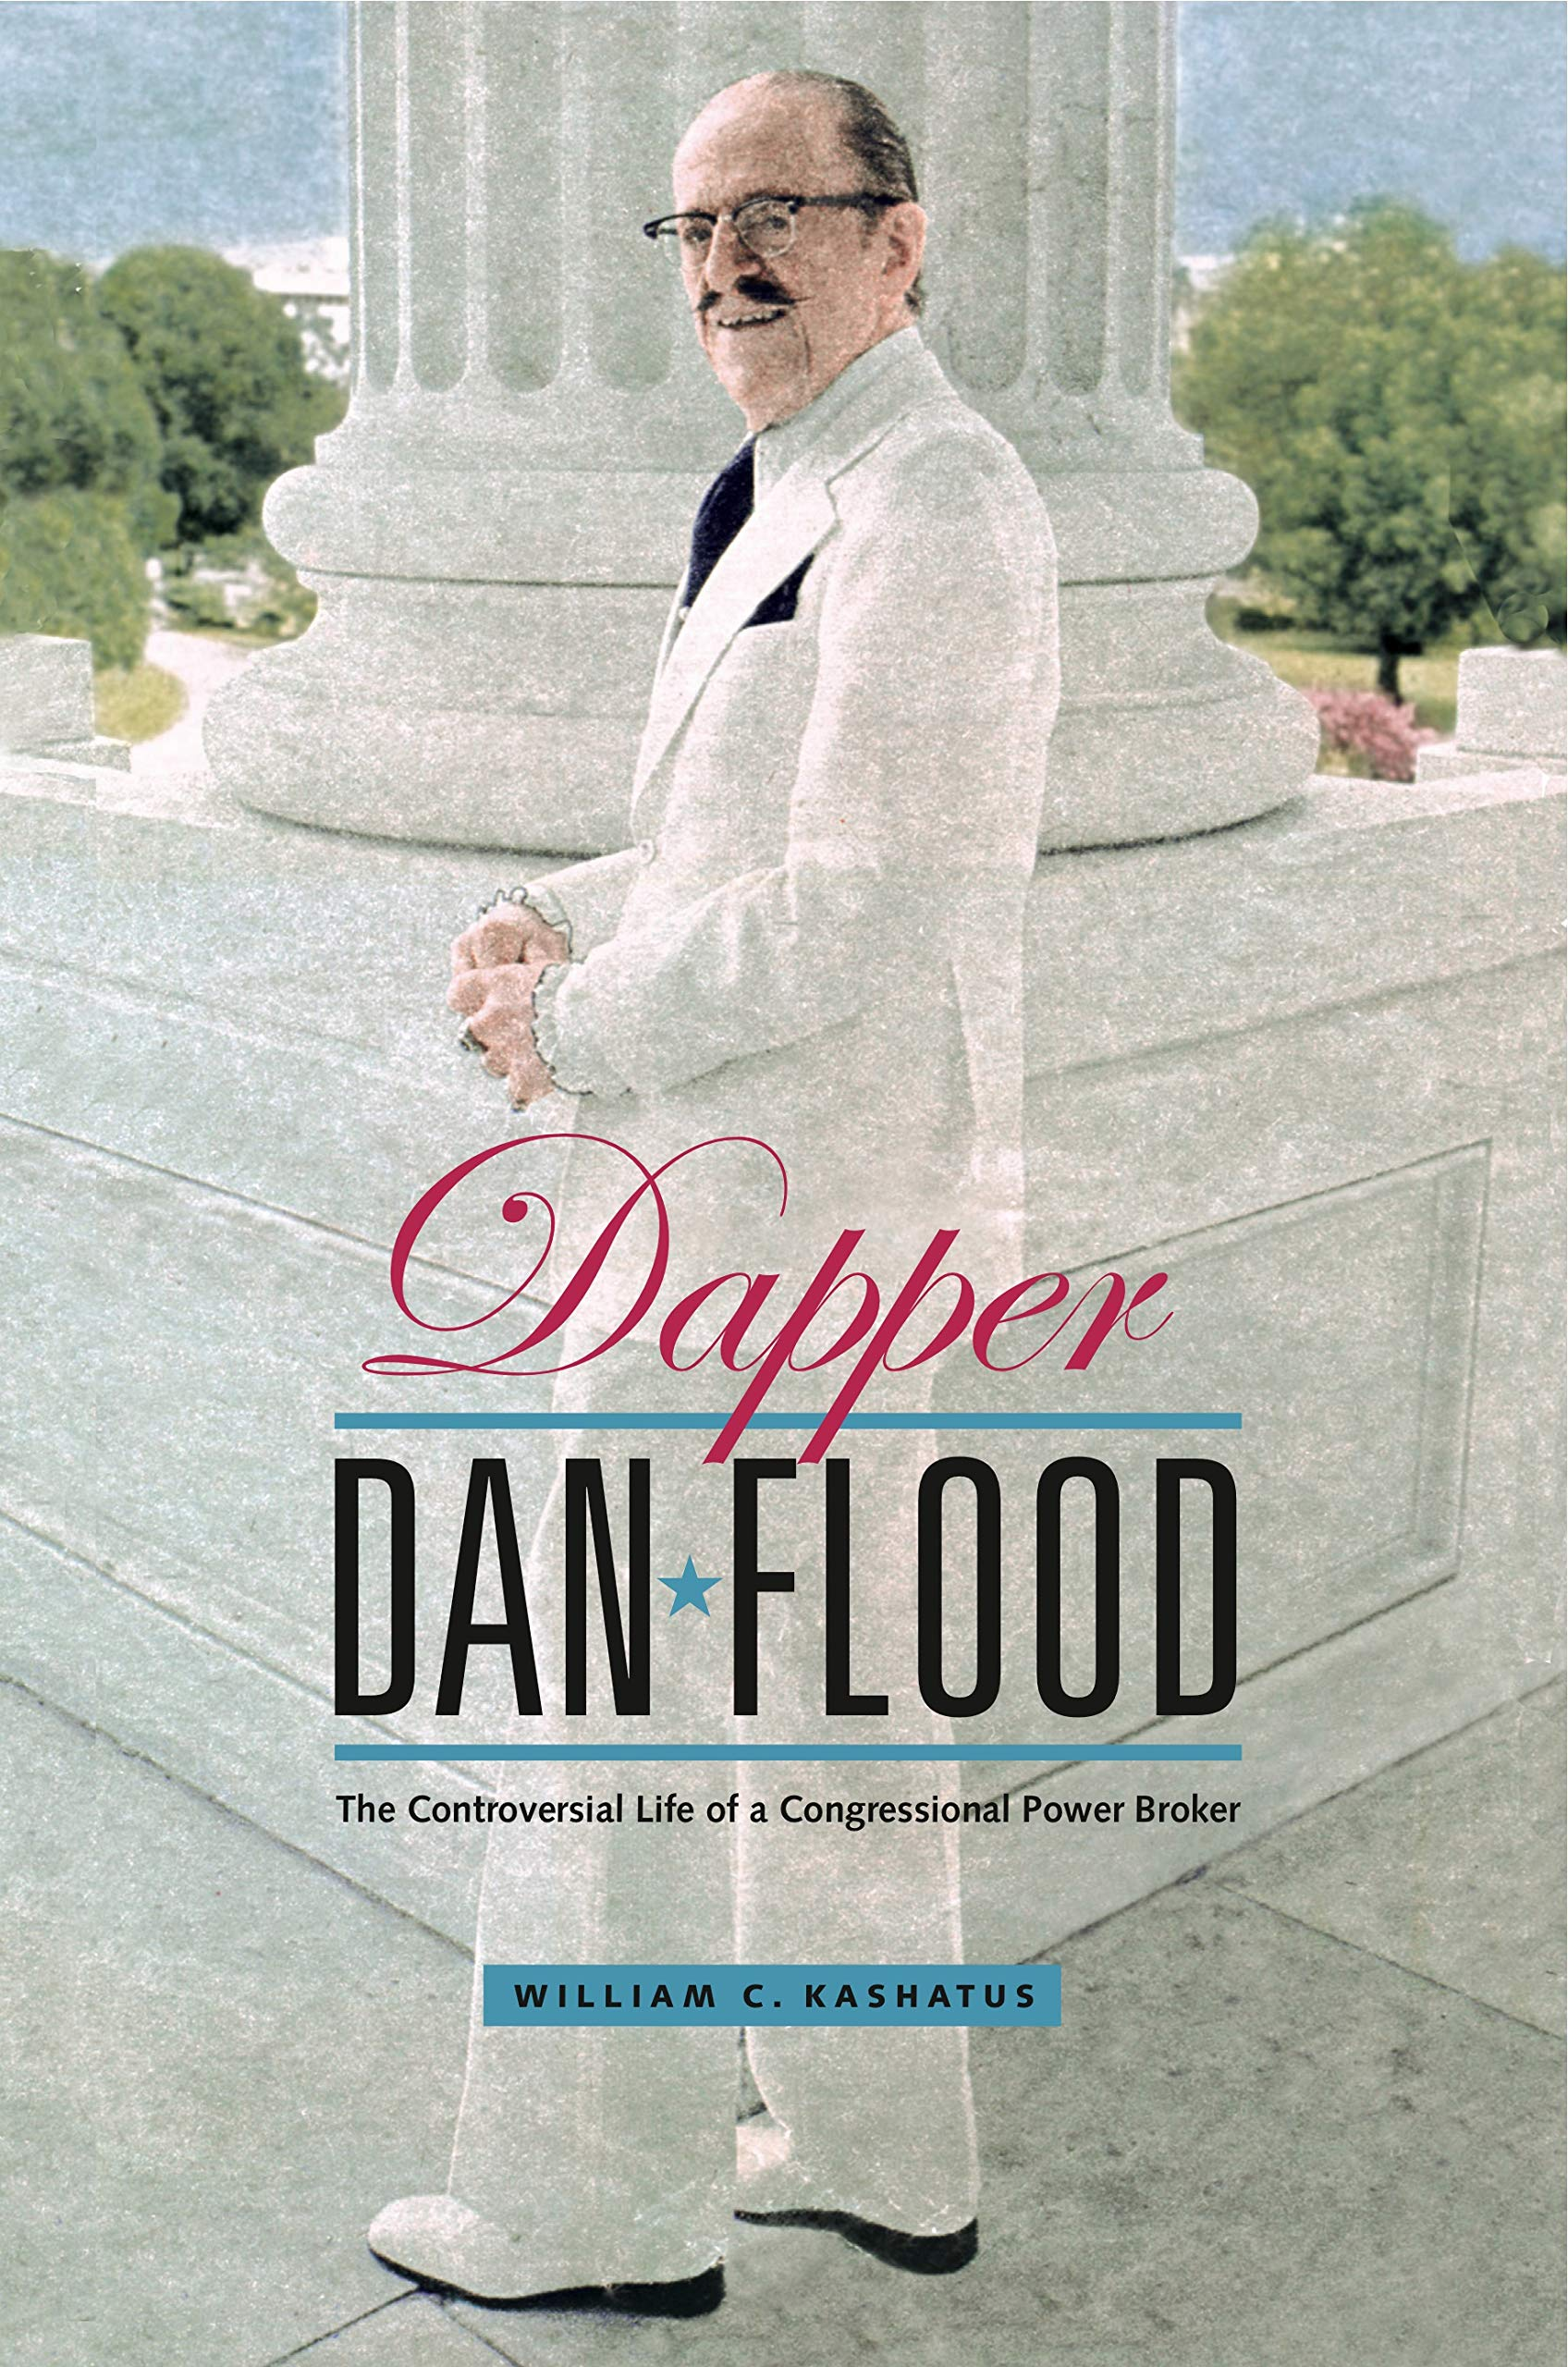 Dapper Dan Flood: The Controversial Life of a Congressional Power